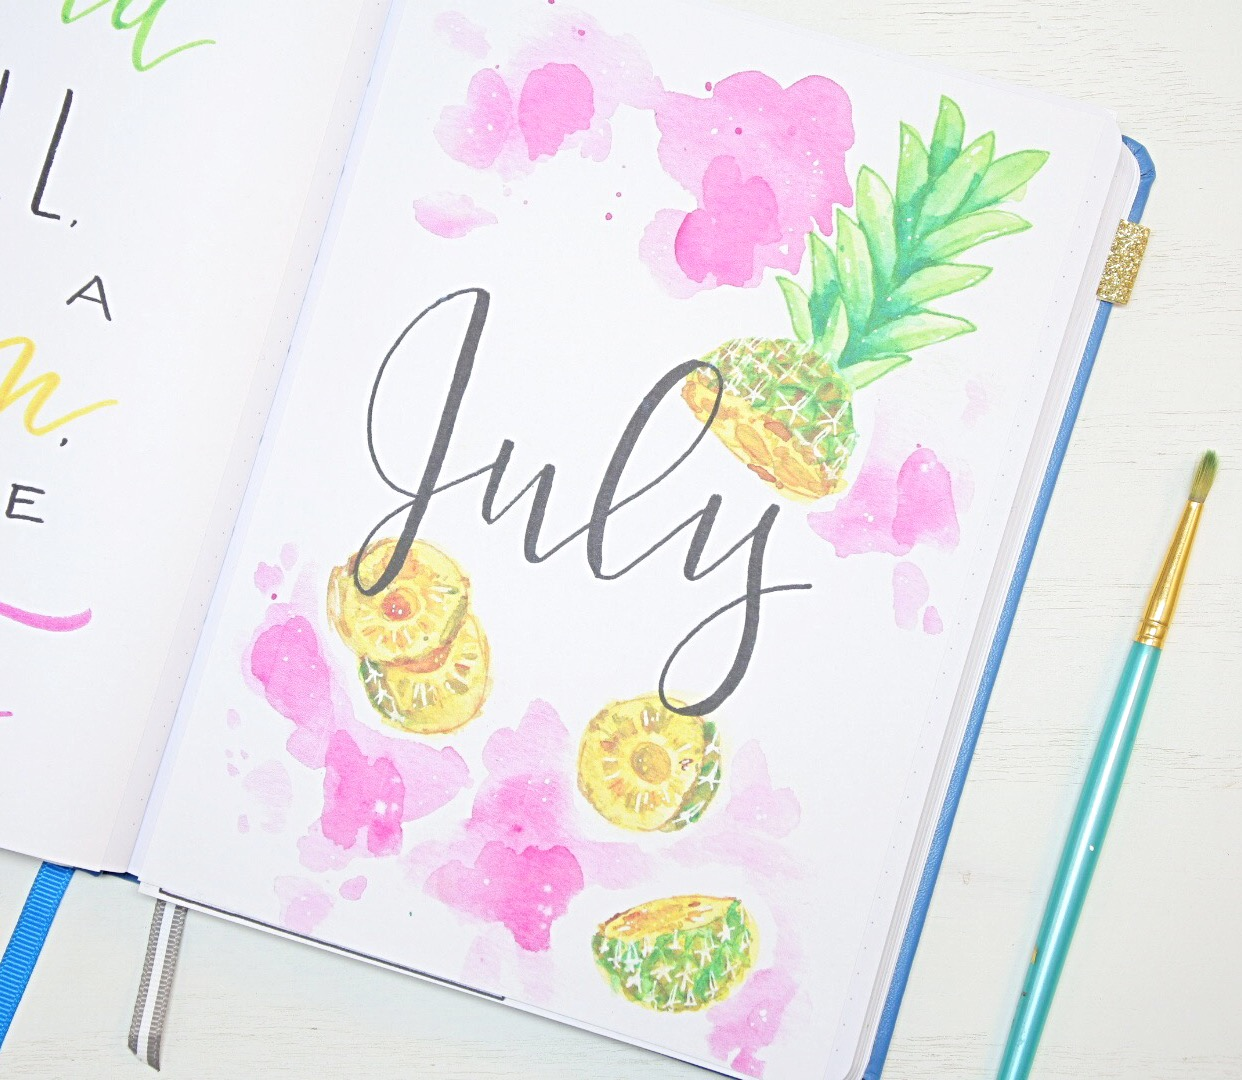 July cover page